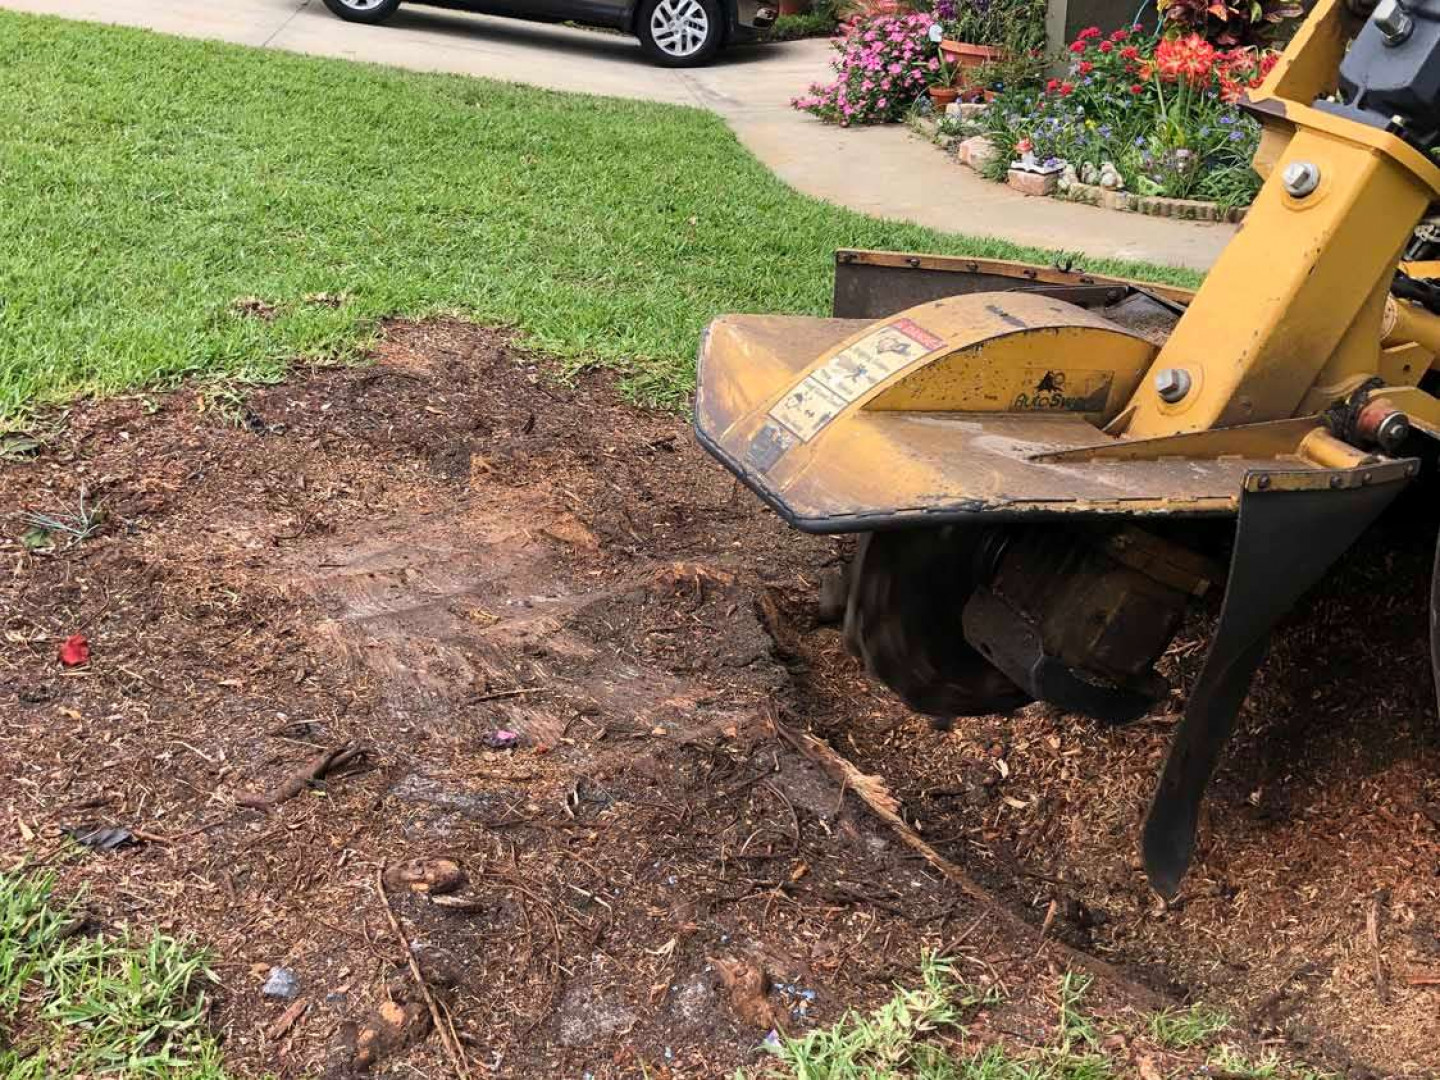 Why should you get rid of that troublesome tree stump?